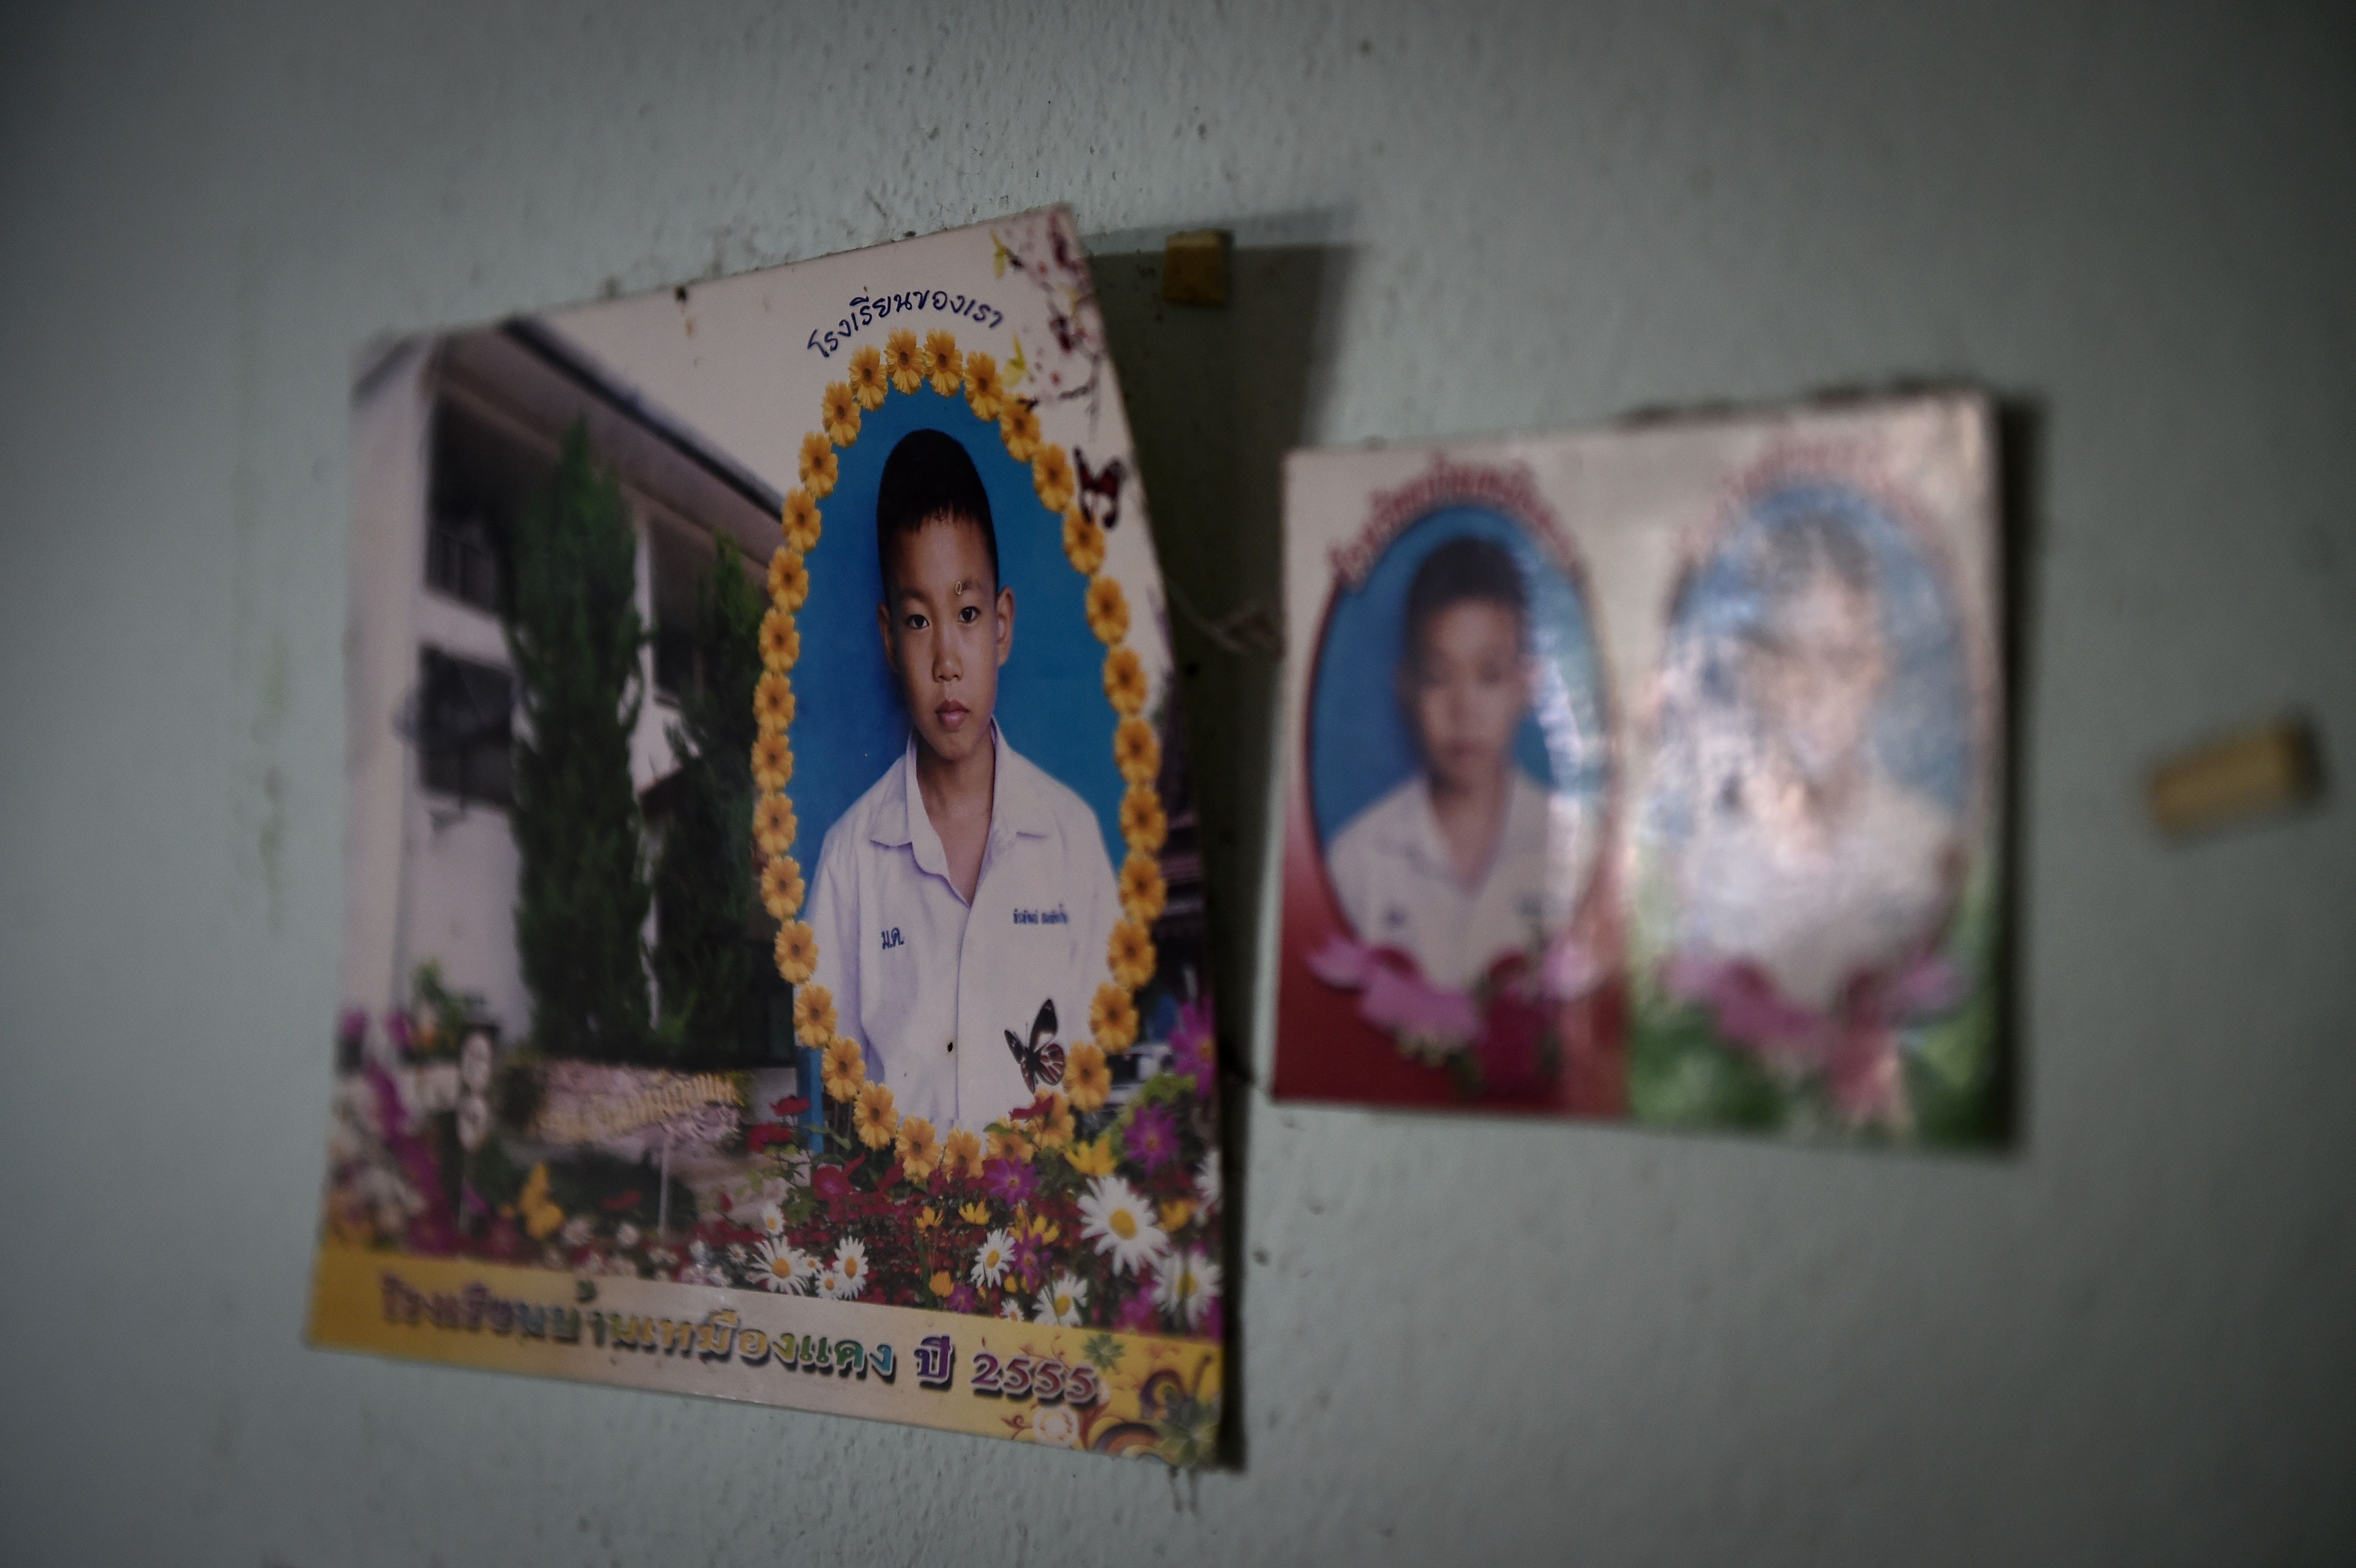 Photographs of Pheeraphat 'Night' Sompiengjai, one of the members of a Thai youth football team currently trapped at the Tham Luang cave, are seen on a wall at his home in Mae Sai on July 4, 2018.